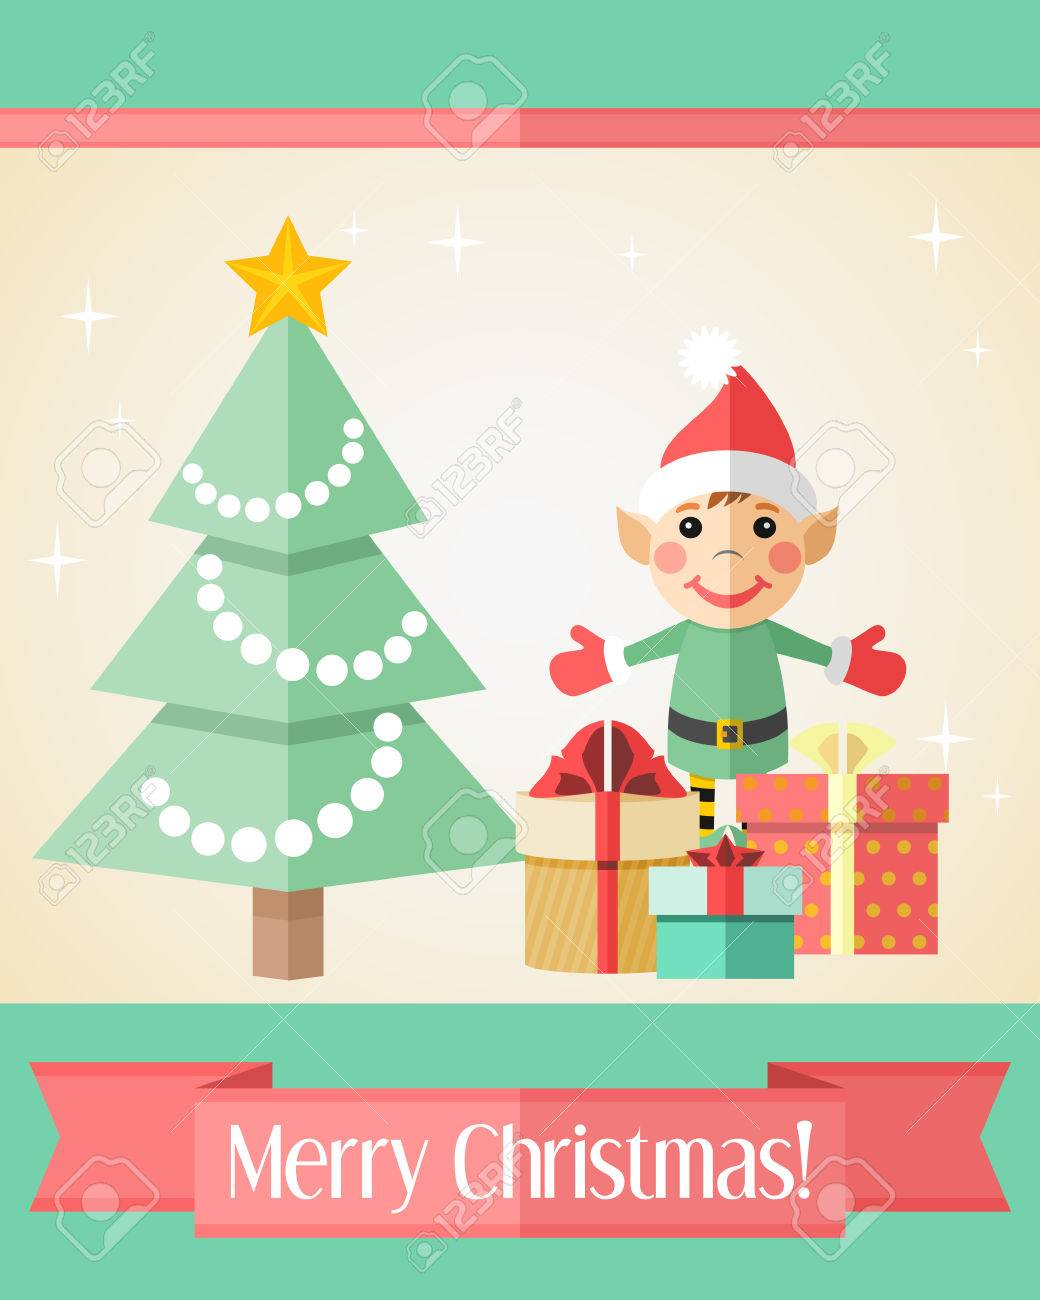 Holiday Christmas Card With Elf Standing Near Fir Tree And Gifts